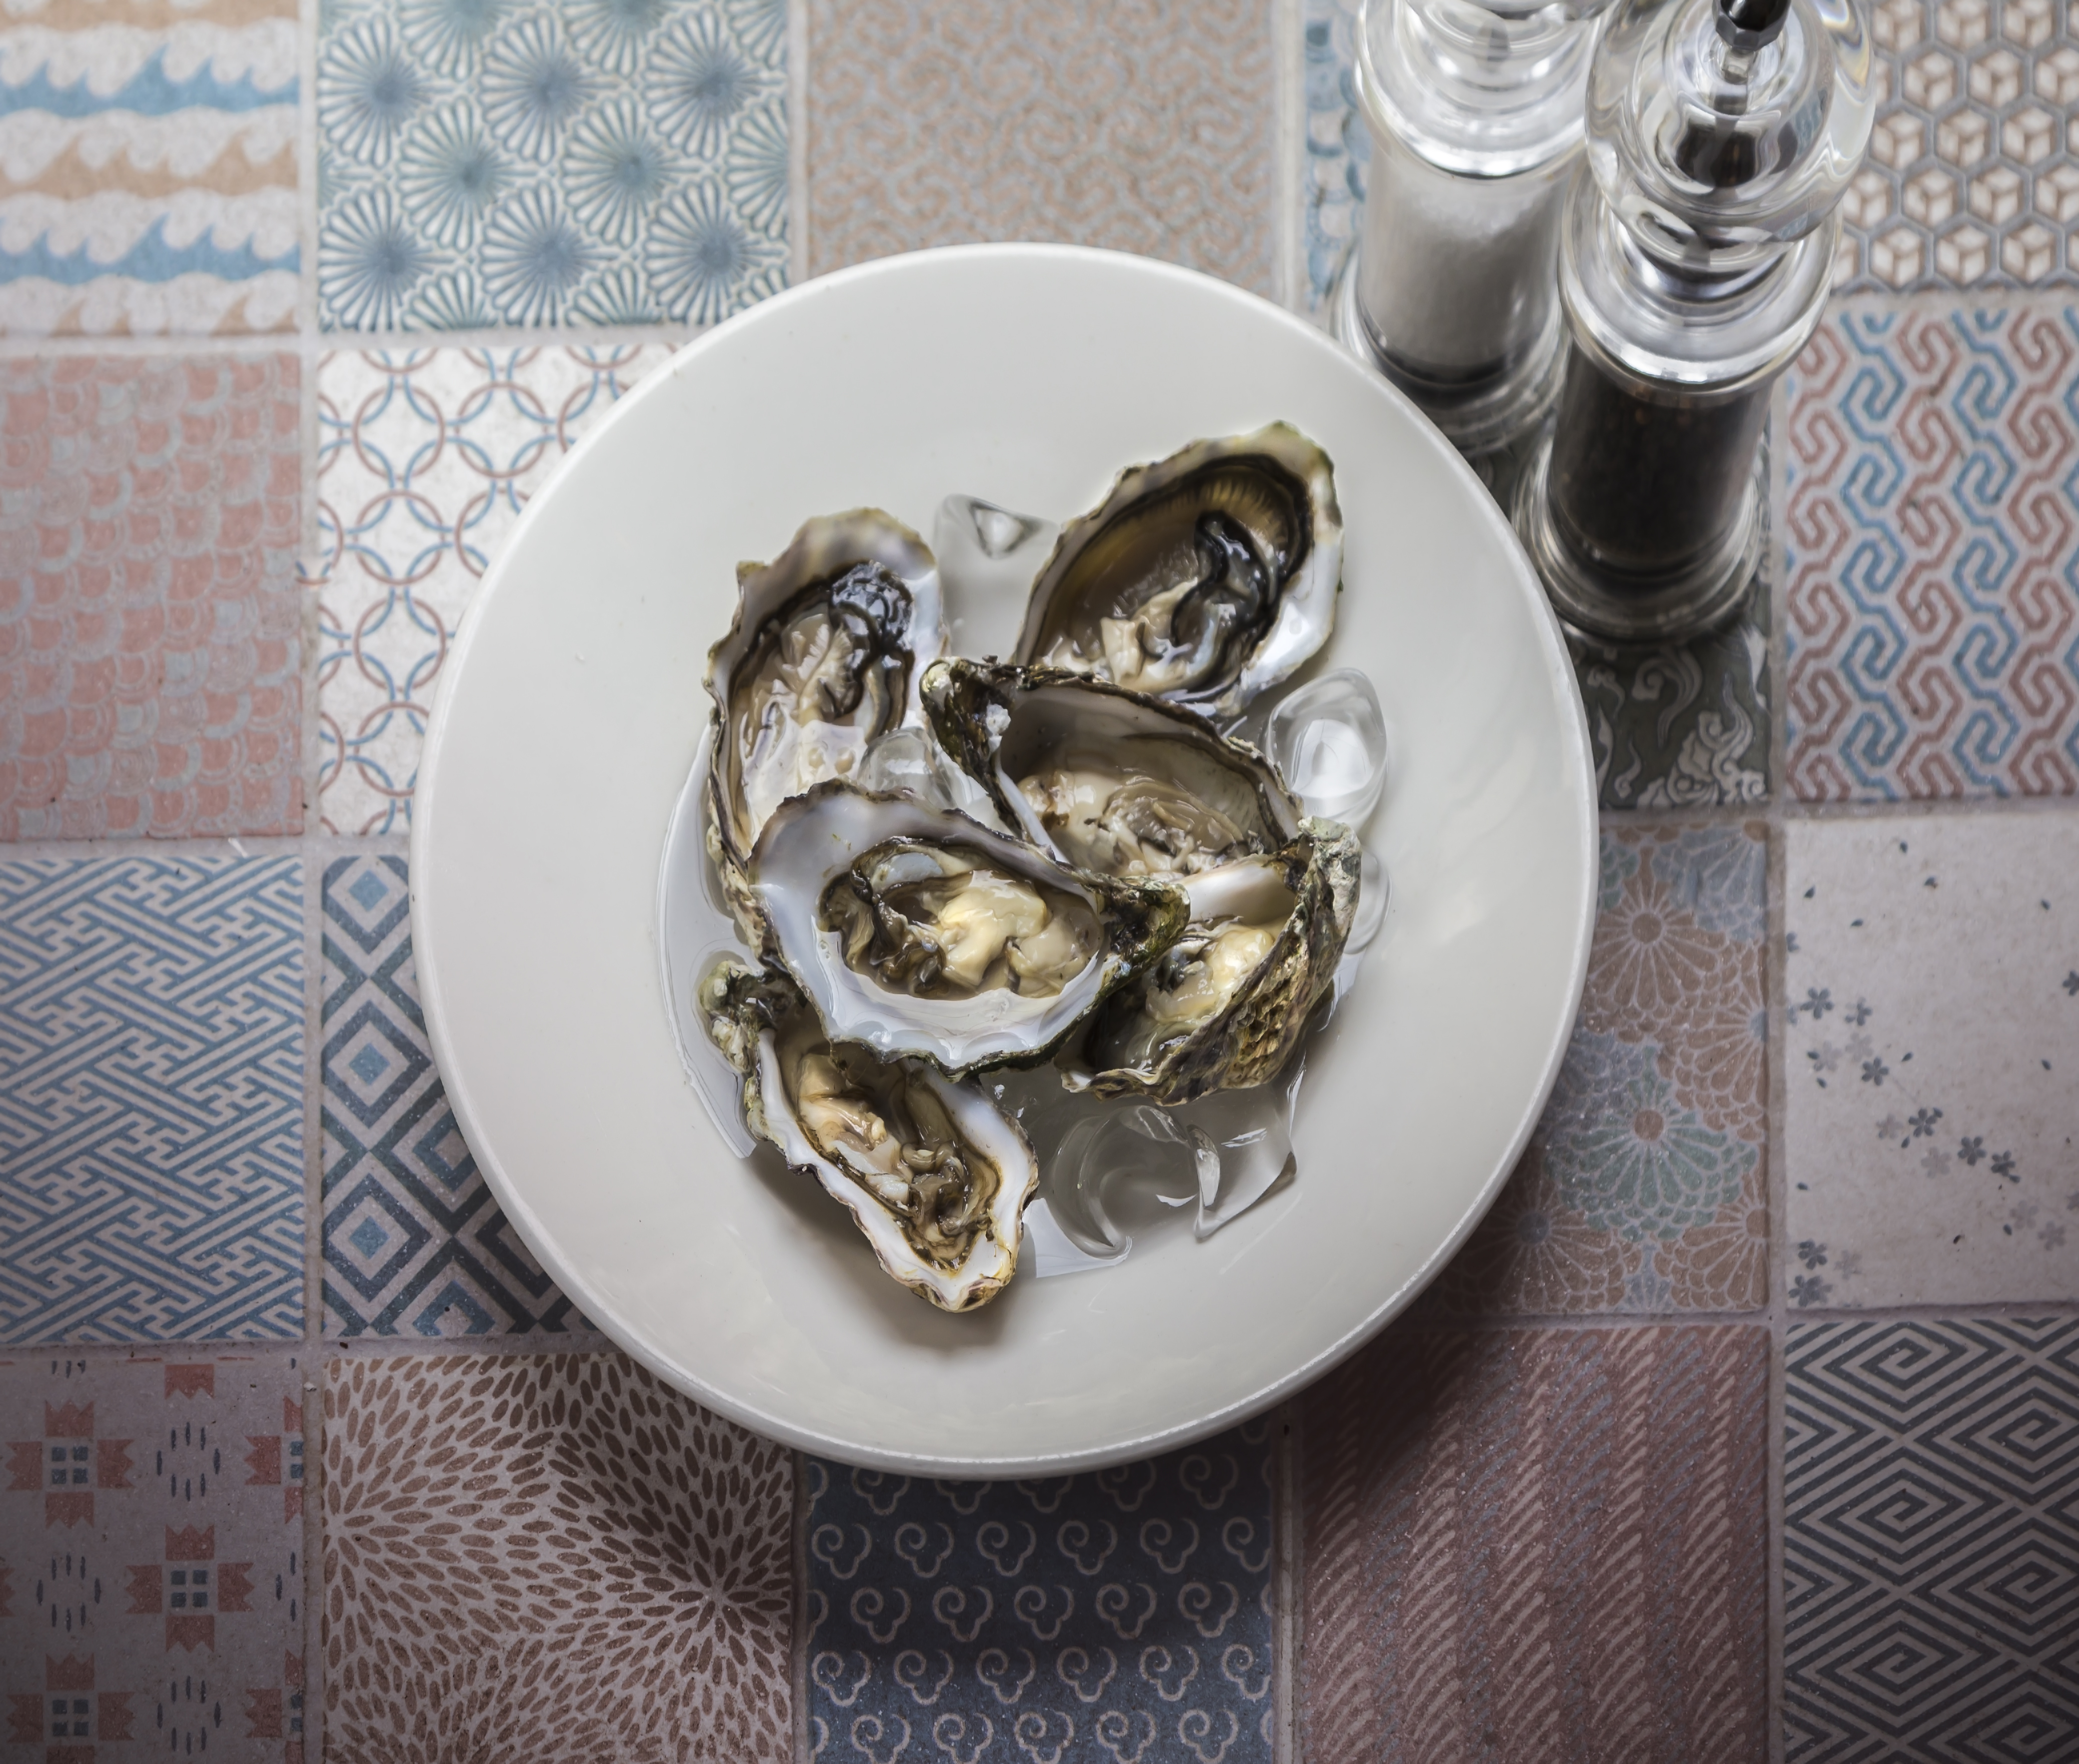 Oysters at Man Friday